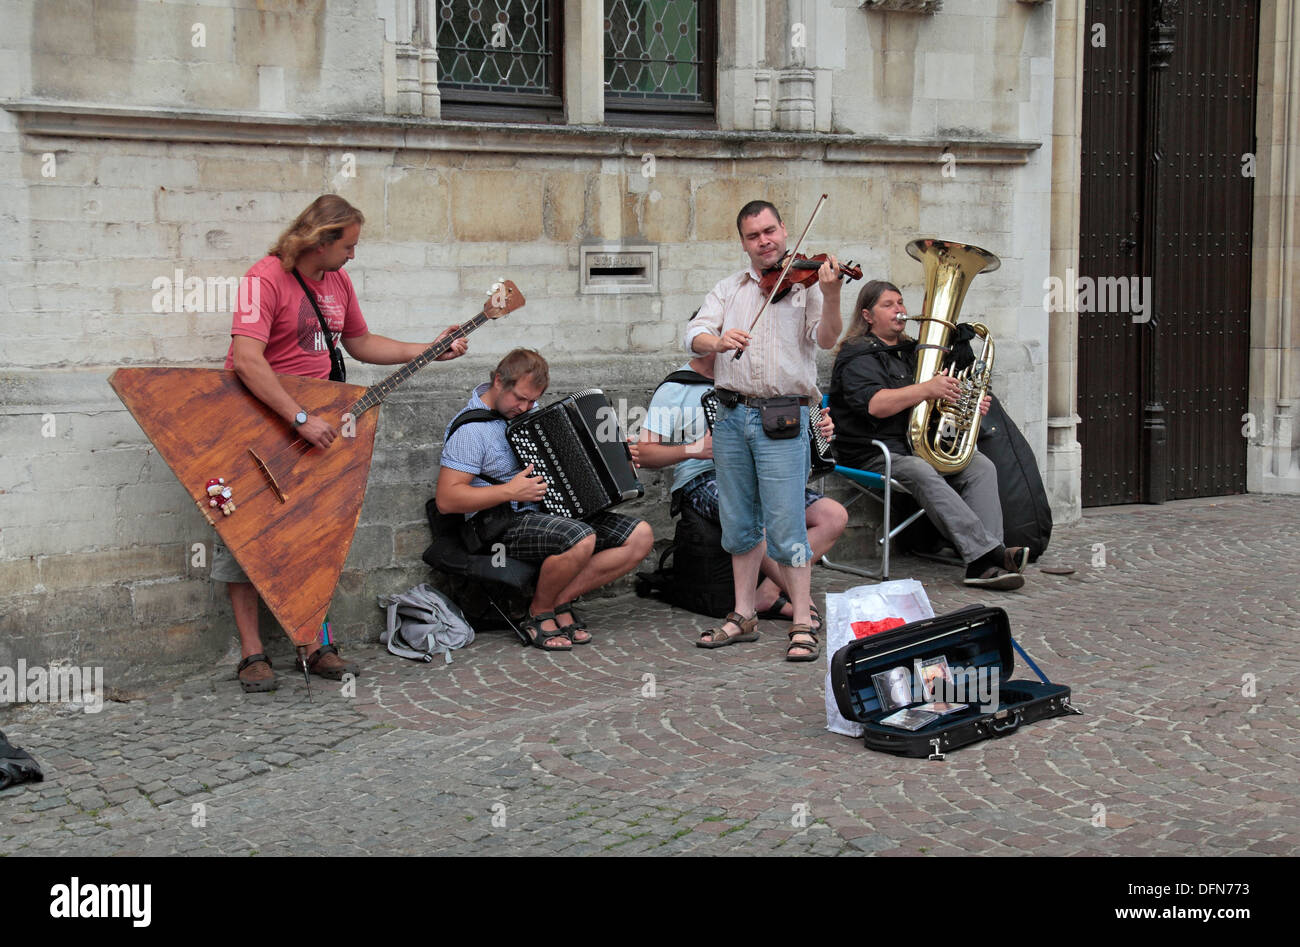 Street musicians, including the amazing looking balalaika, in historic Bruges (Brugge), West Flanders, Belgium. - Stock Image